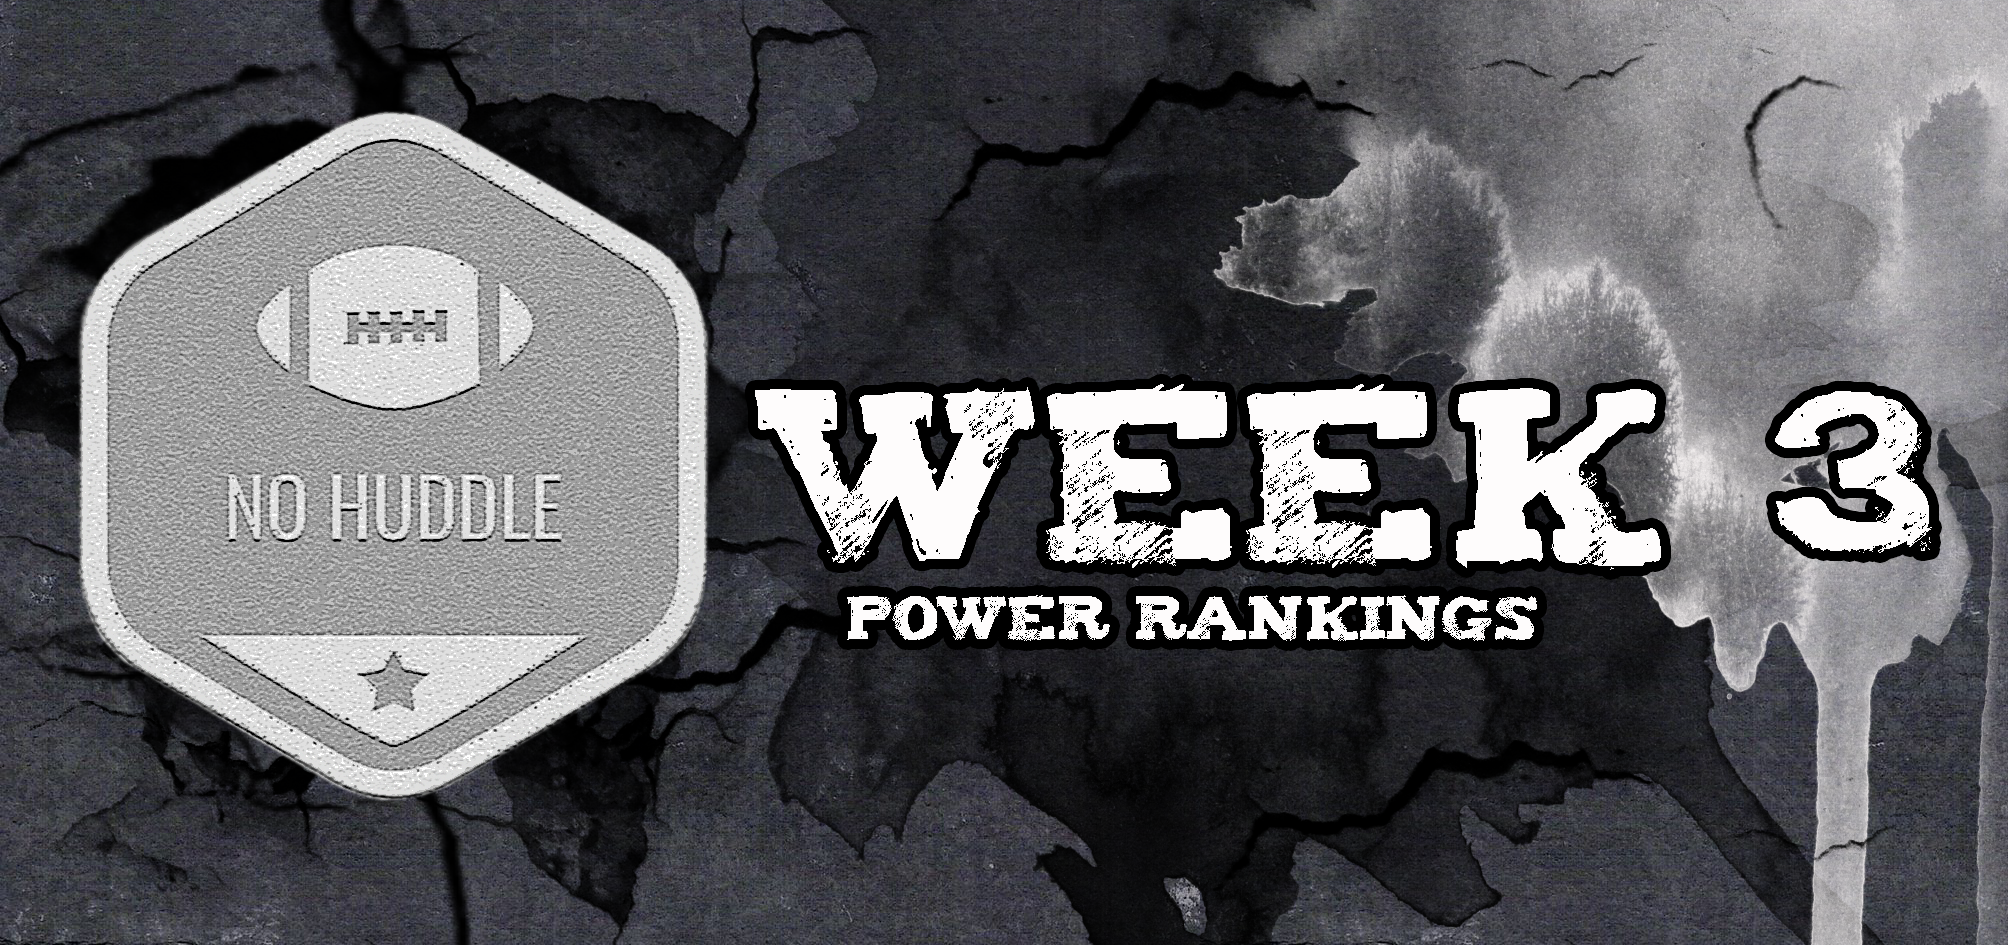 Power Rankings: Semana 3